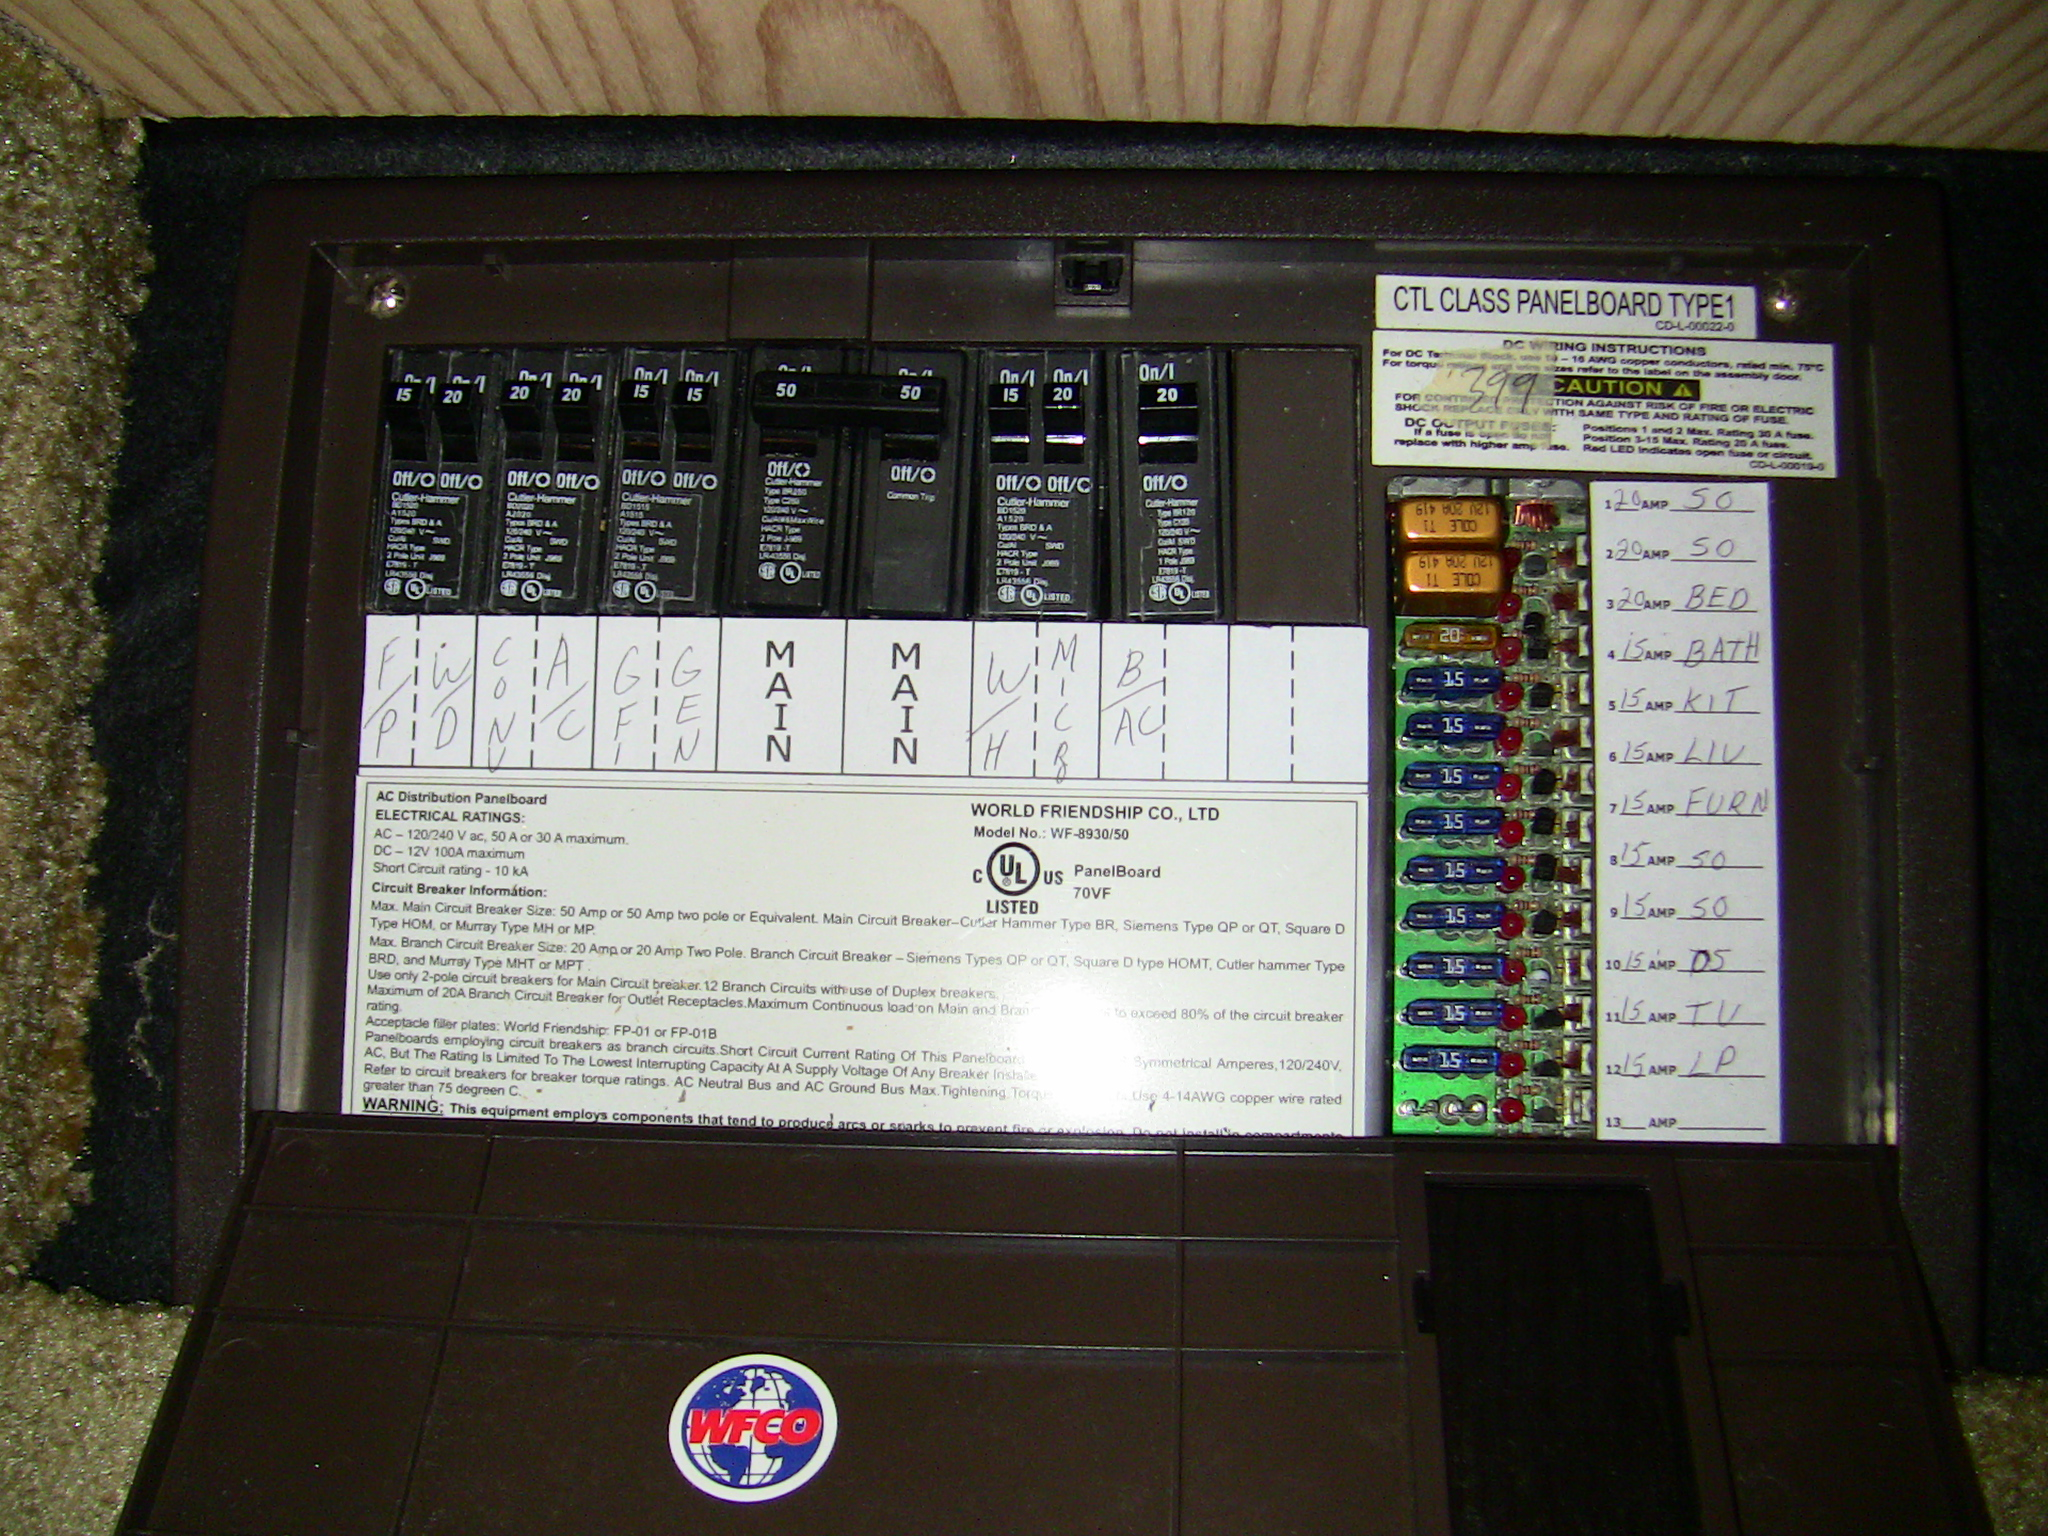 Rv Power Fuse Box Auto Electrical Wiring Diagram 11 Images